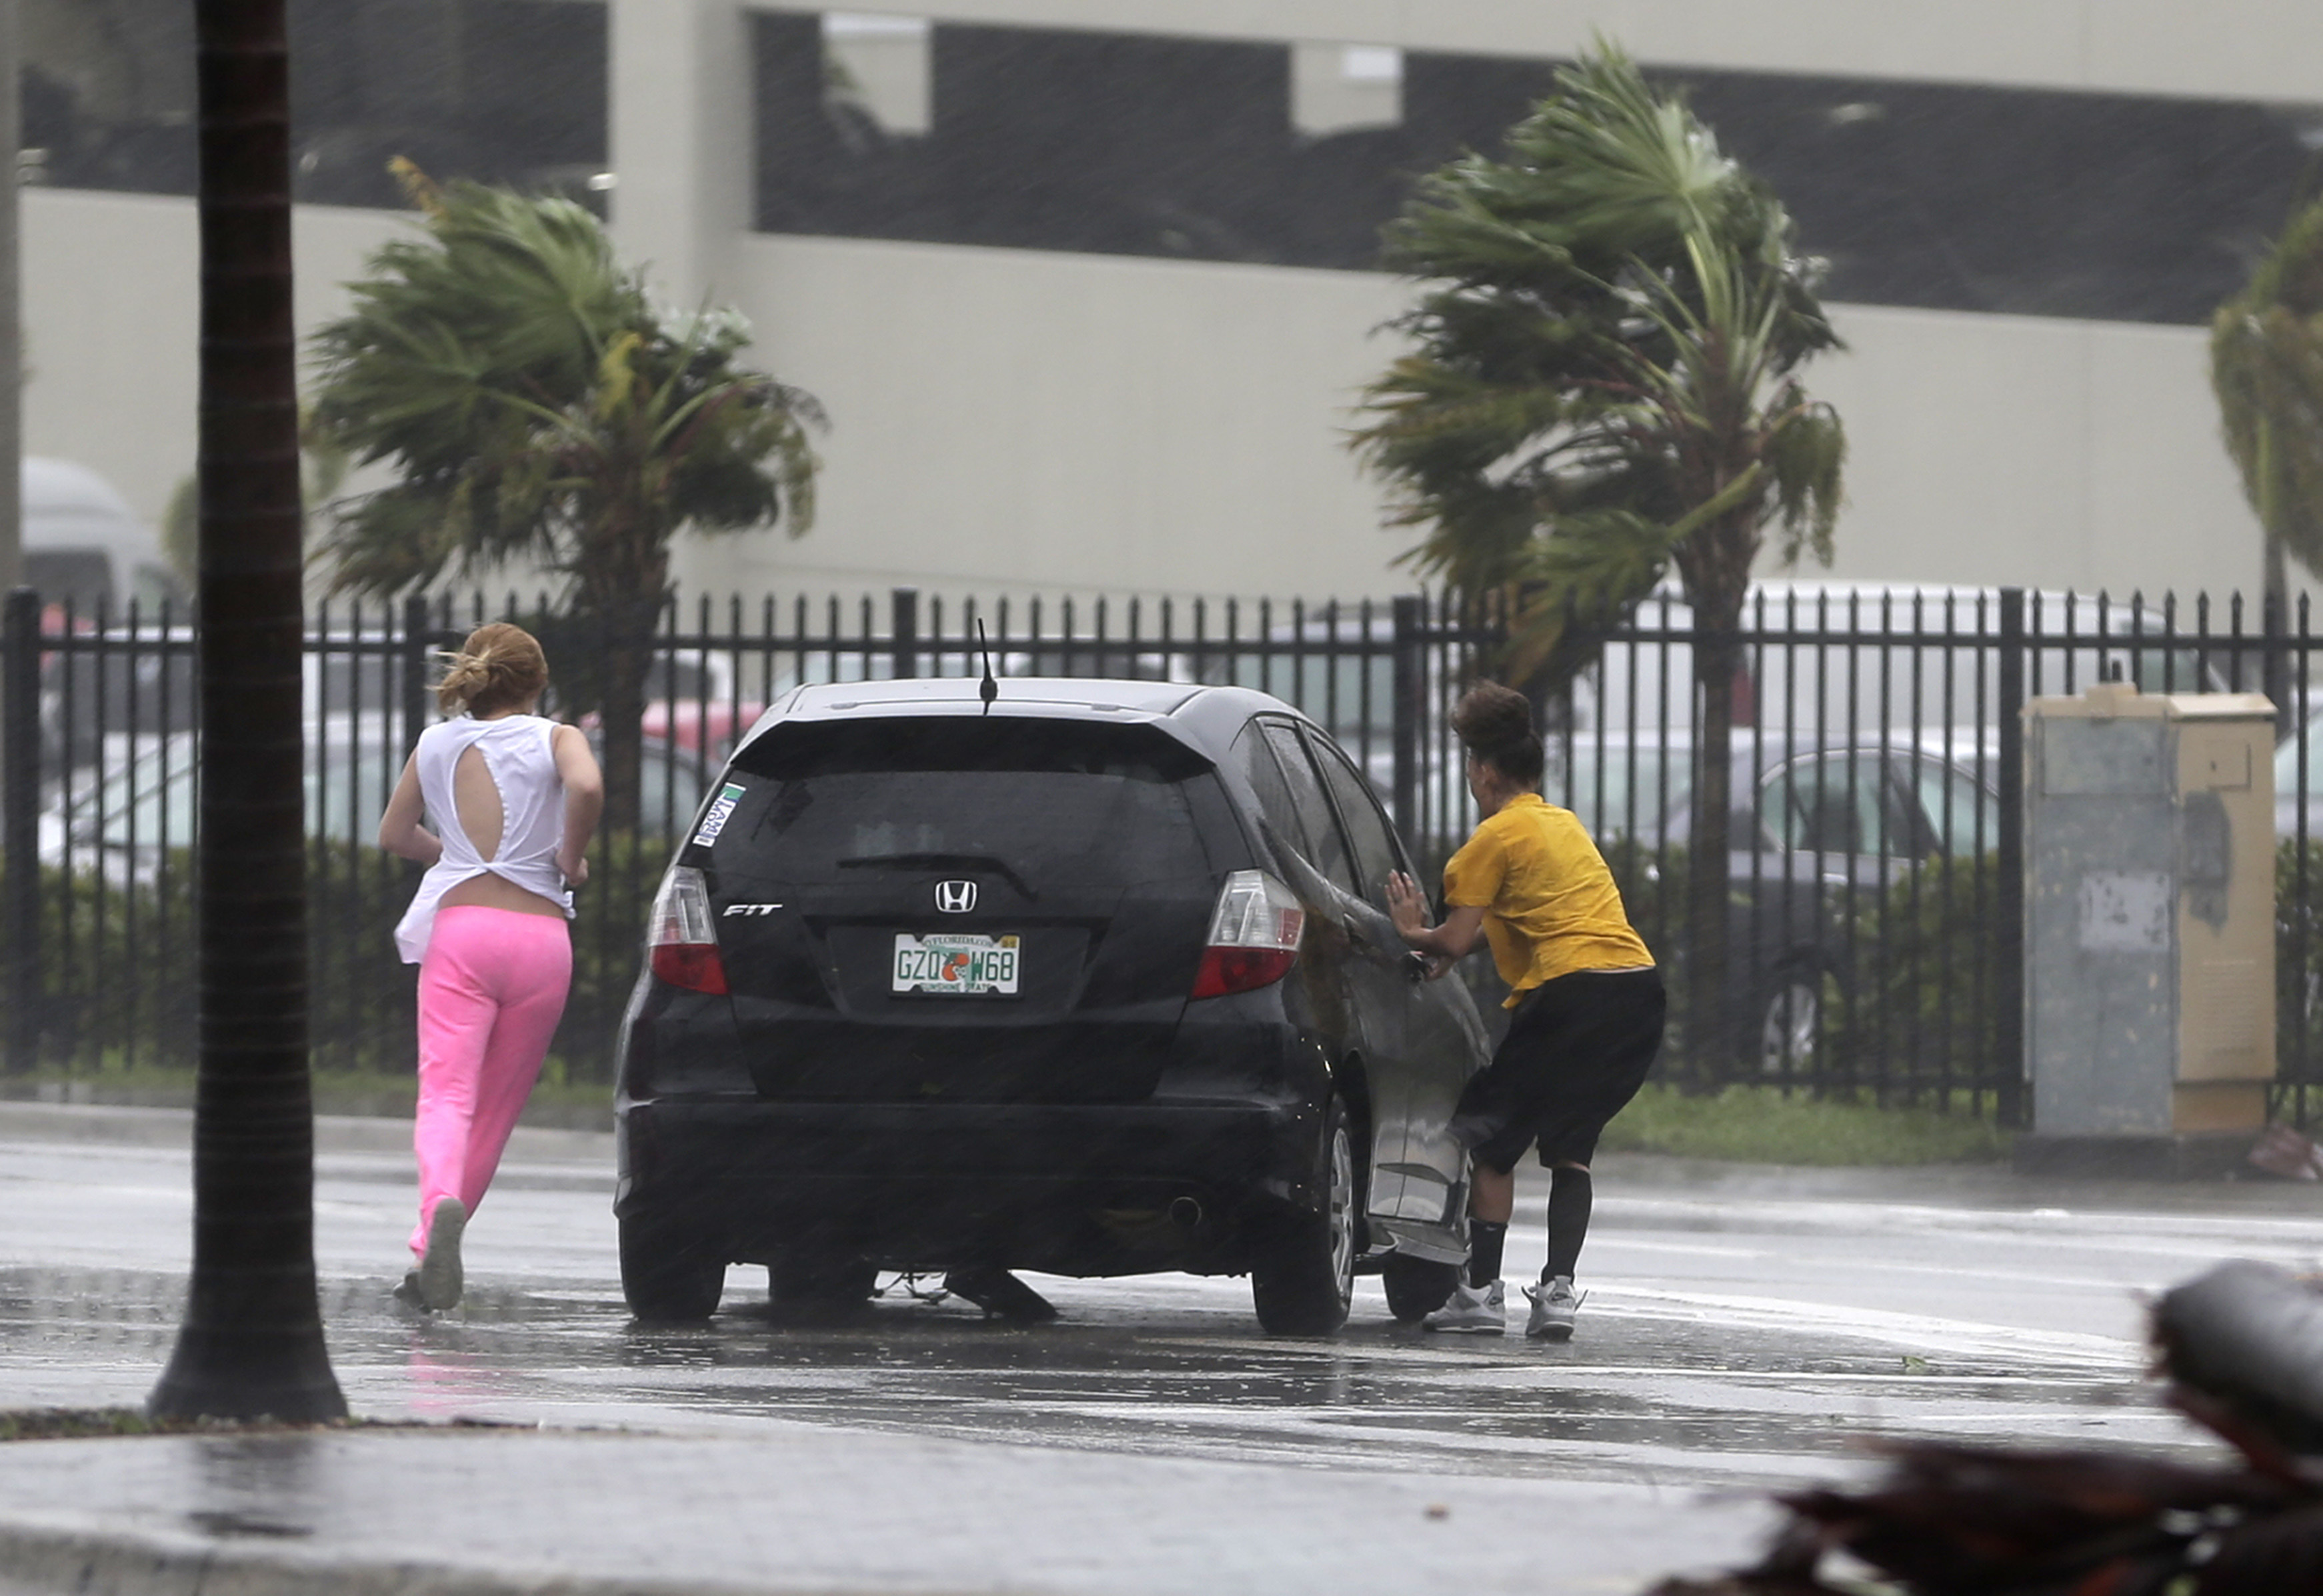 <div class='meta'><div class='origin-logo' data-origin='none'></div><span class='caption-text' data-credit='Alan Diaz/AP Photo'>Stranded motorists try to get back in their car after a breakdown as Hurricane Irma bears down on the Florida Keys, Sunday, Sept. 10, 2017, in Hialeah, Fla.</span></div>